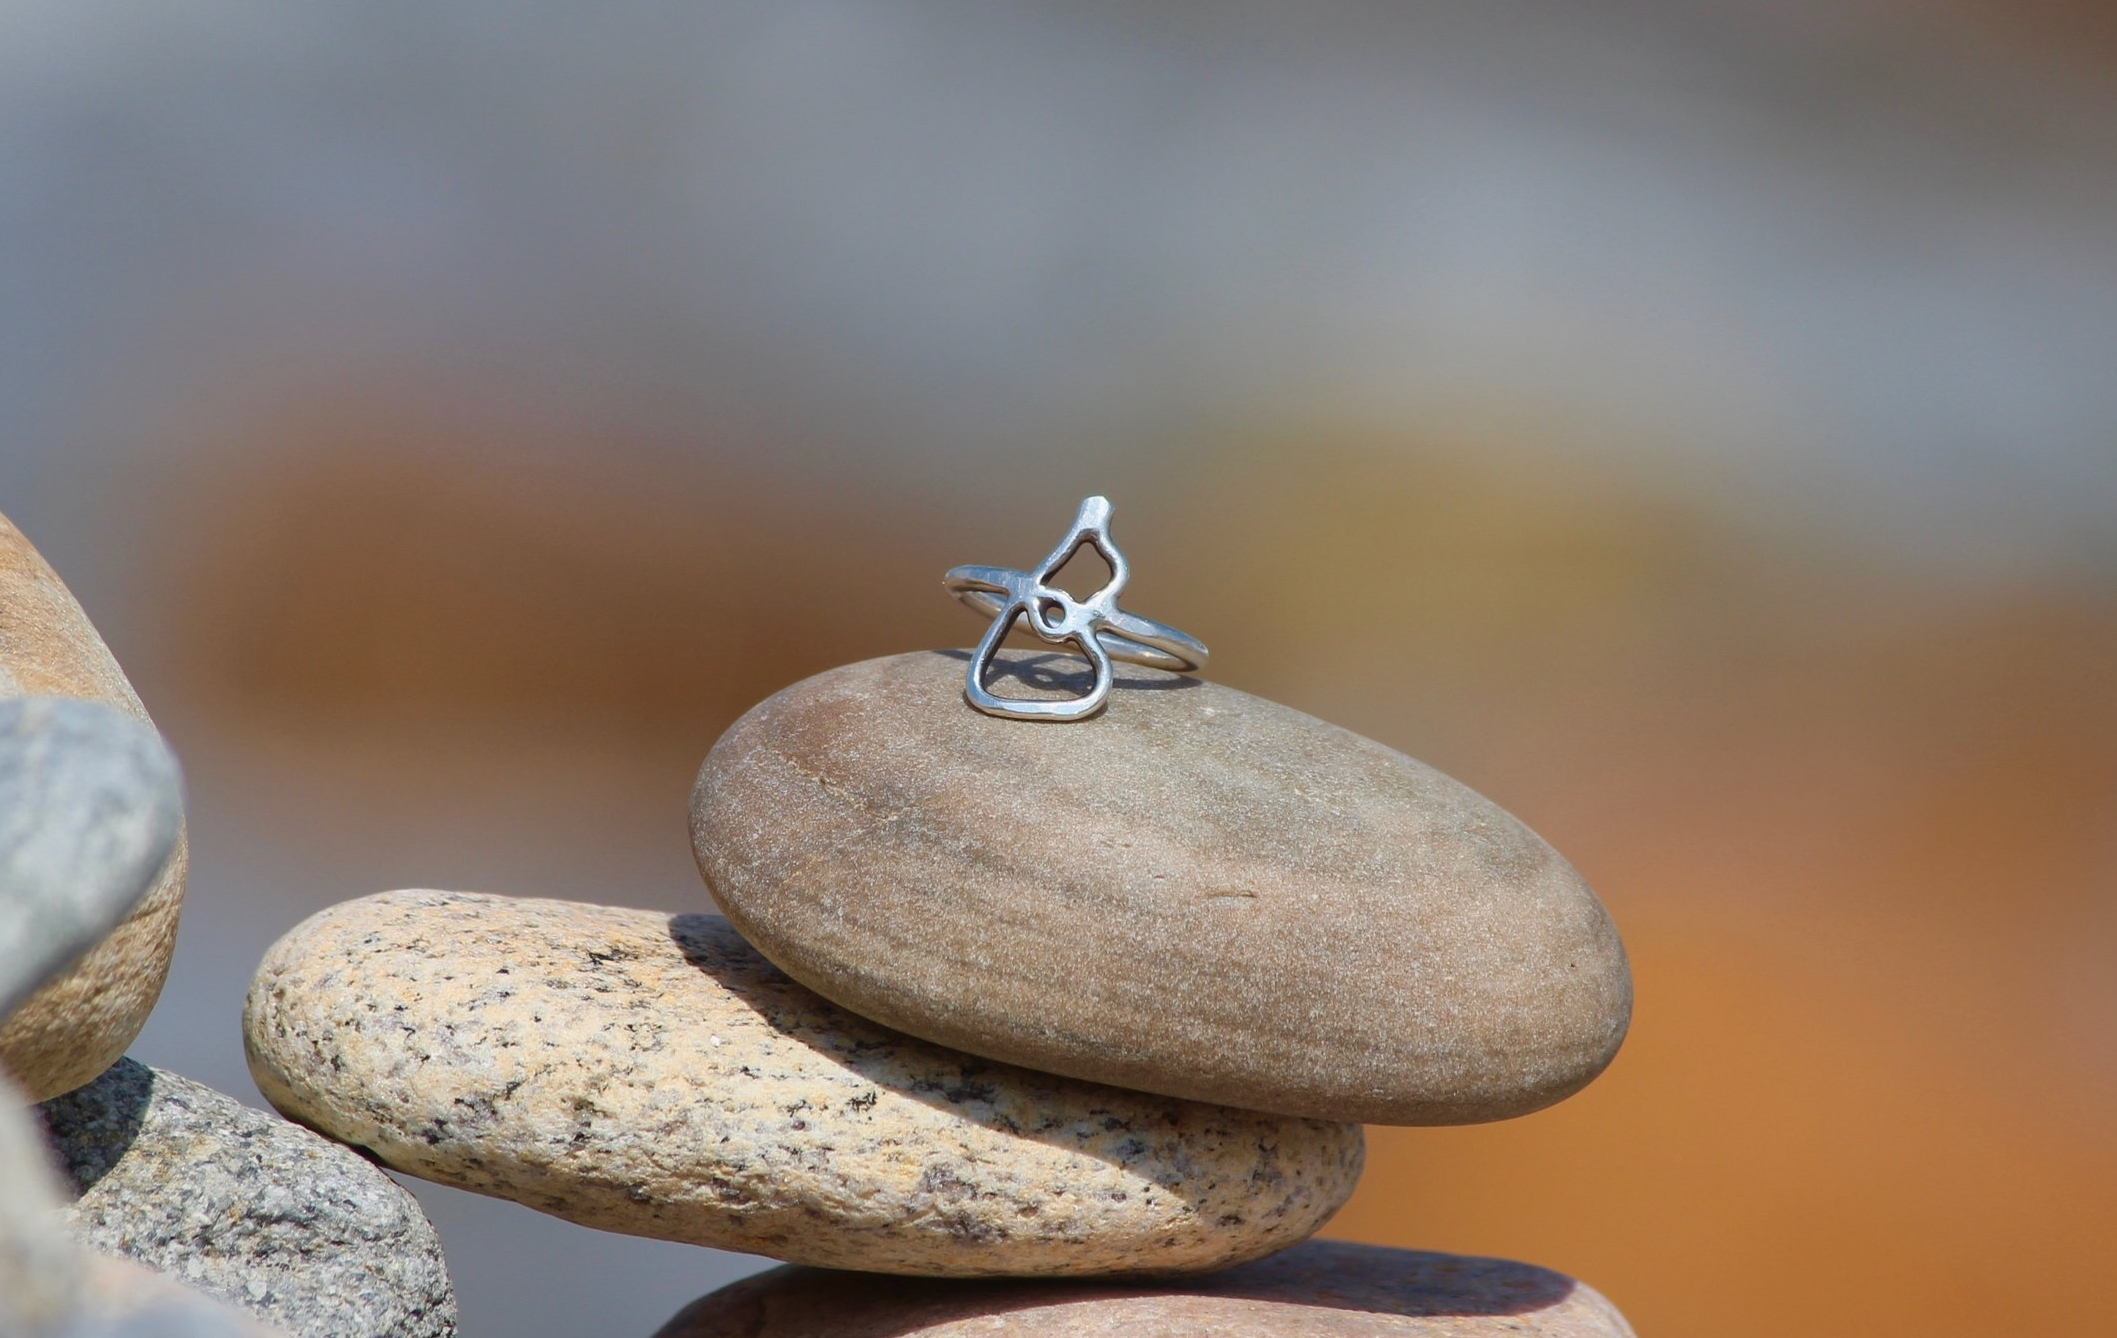 Sterling silver ring in the shape of the Island by Peter Gibbons, find him online  Here.